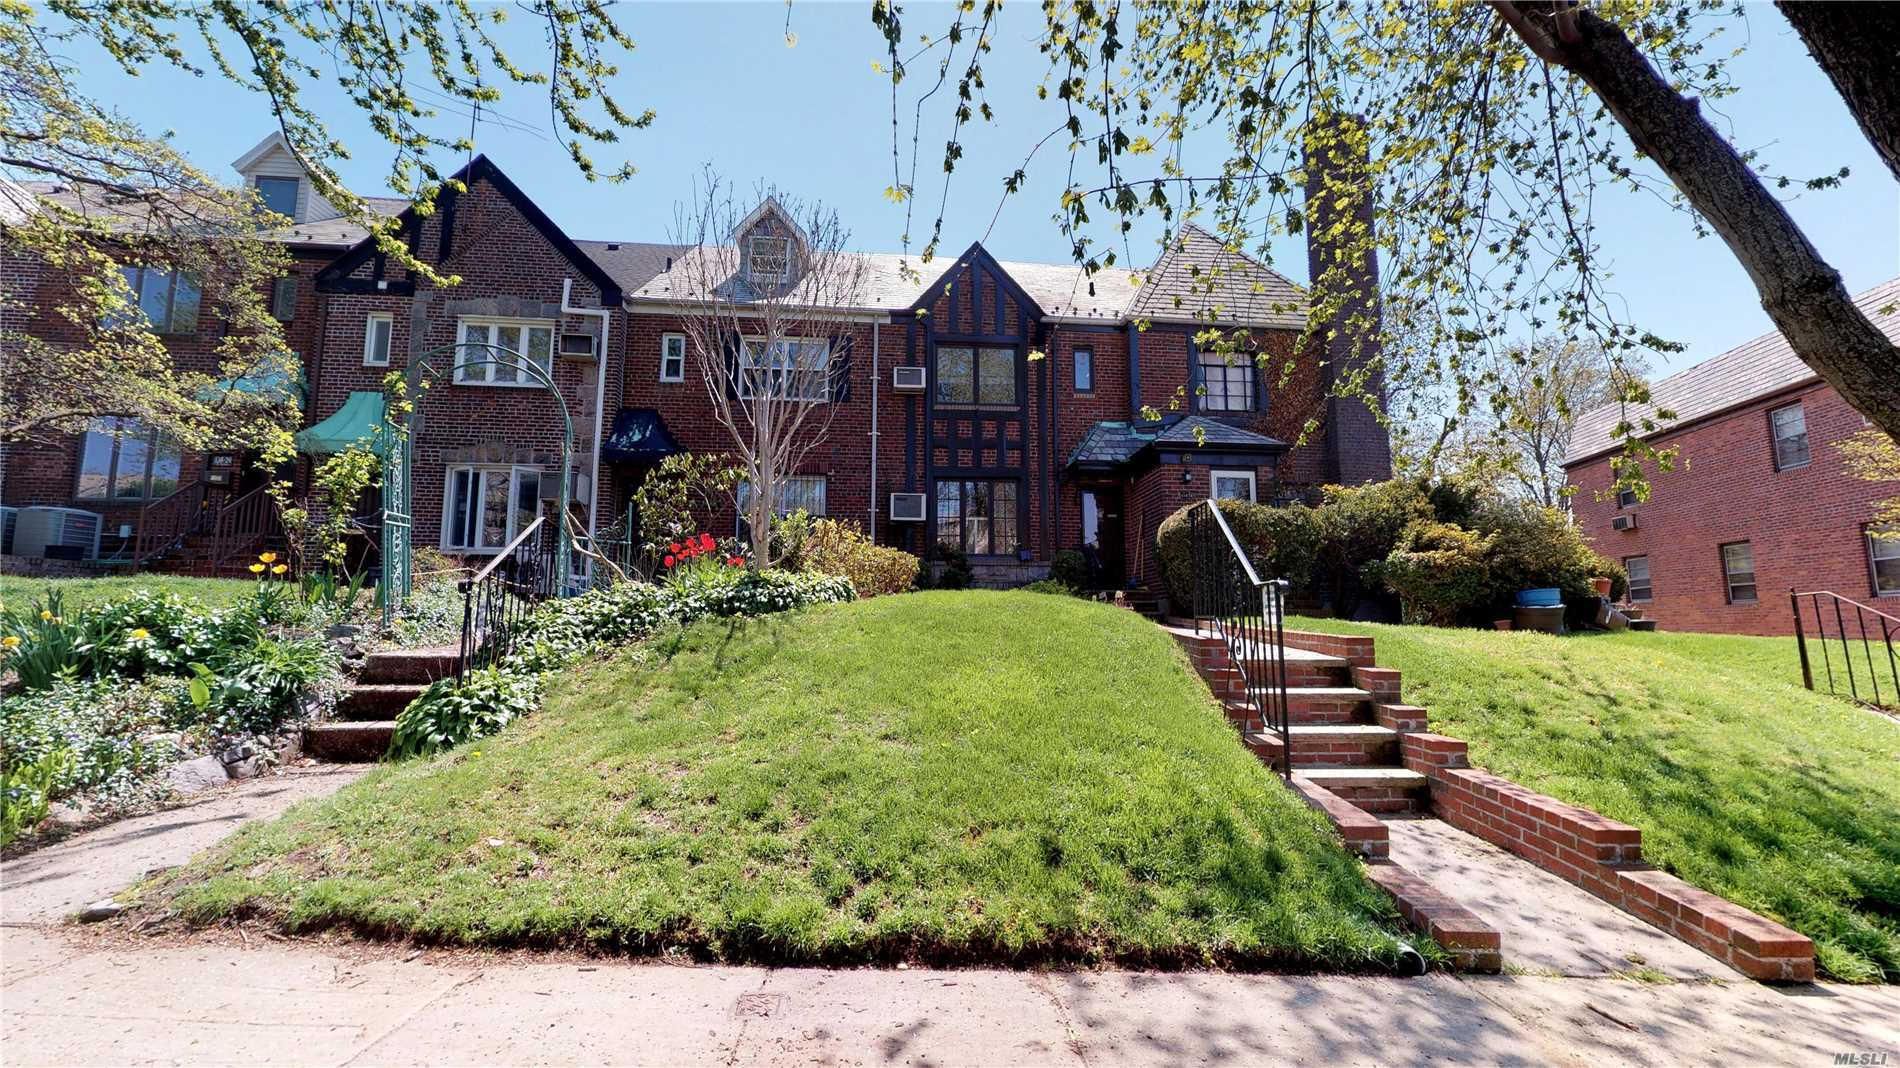 Brand New to market Colonial Home west of Main Street in KGH's coveted Charm Circle. Bright and spacious Living Room, formal Dining Room, and Kitchen stocked with Sub-Zero refrigerator. Sun Room extension on main floor with a Powder Room. Main Floor has 3 full bedrooms and a Full bathroom. Above ground full finished Basement with separate entrance, newly renovated half Bathroom with a beautiful wall of built-ins, and an attached Garage. Finished Attic with plenty of storage/closet space.